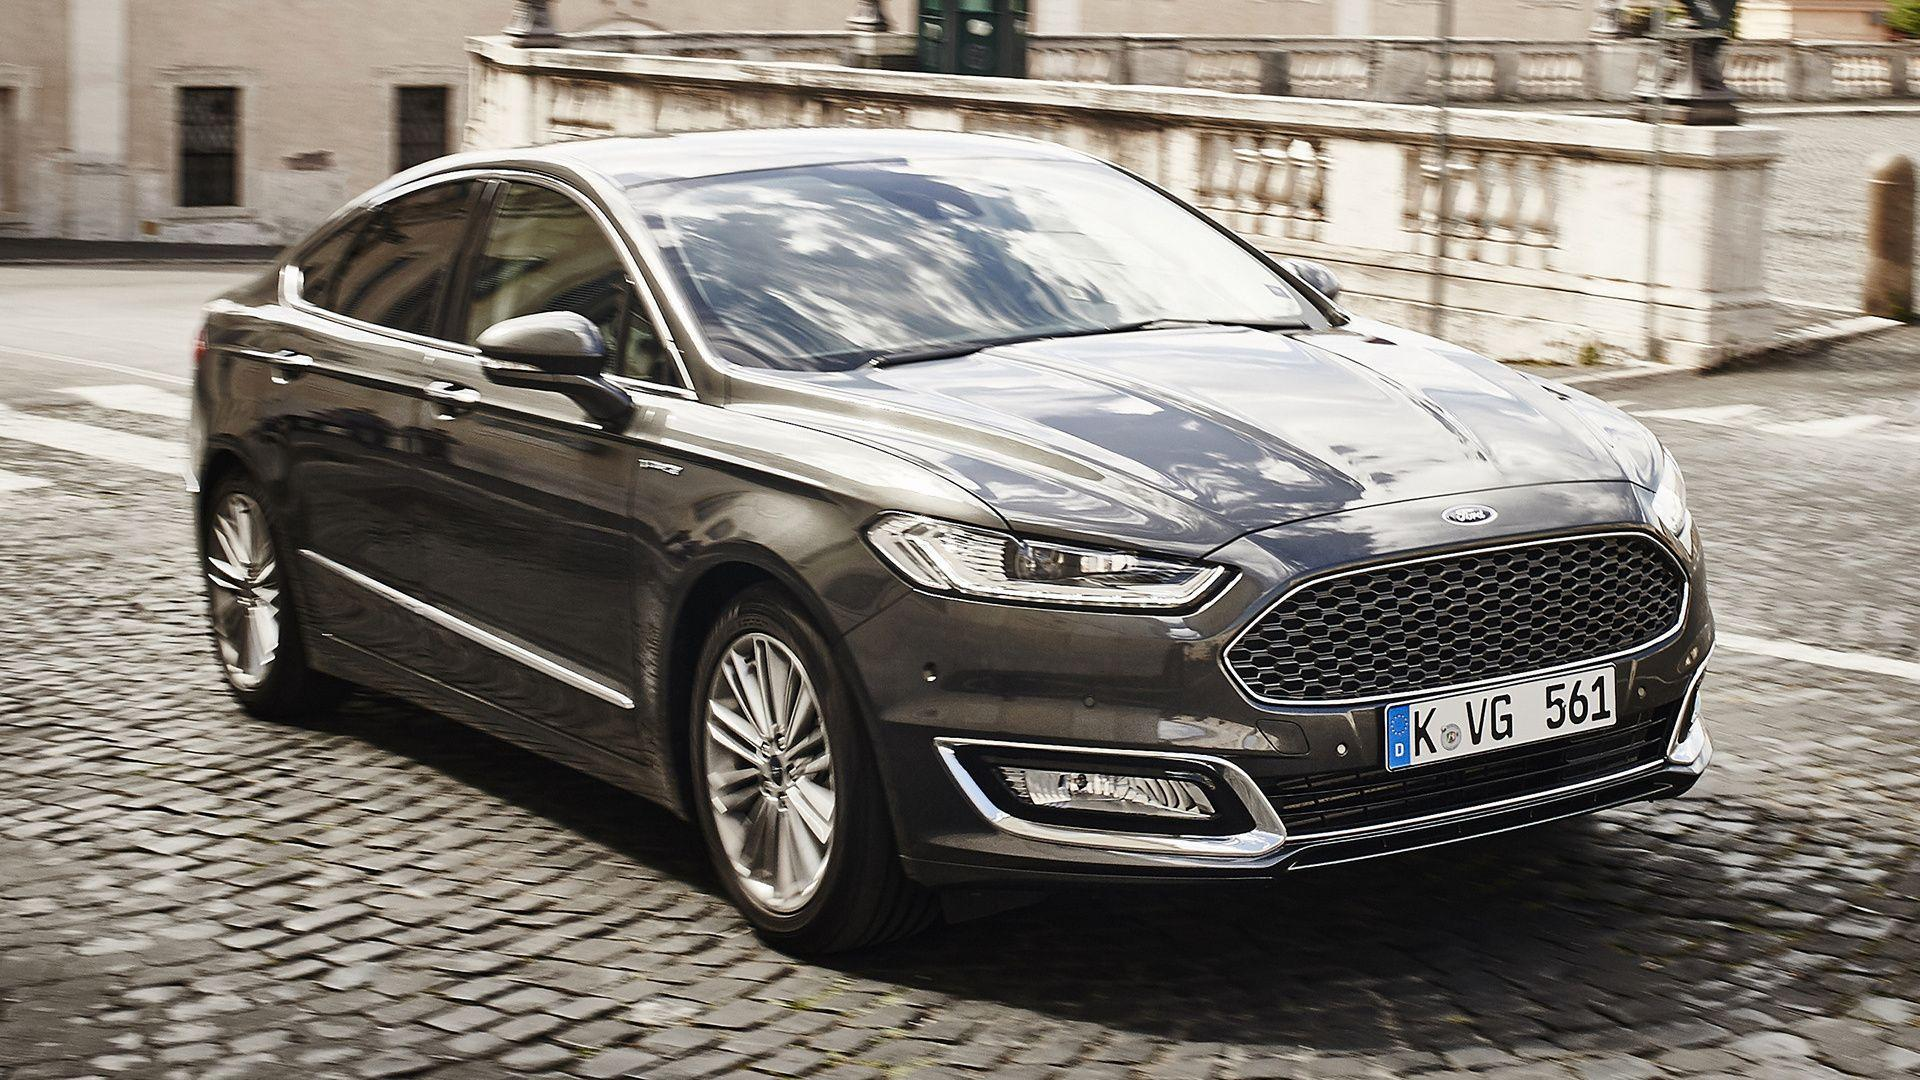 Ford Mondeo Wallpapers 3